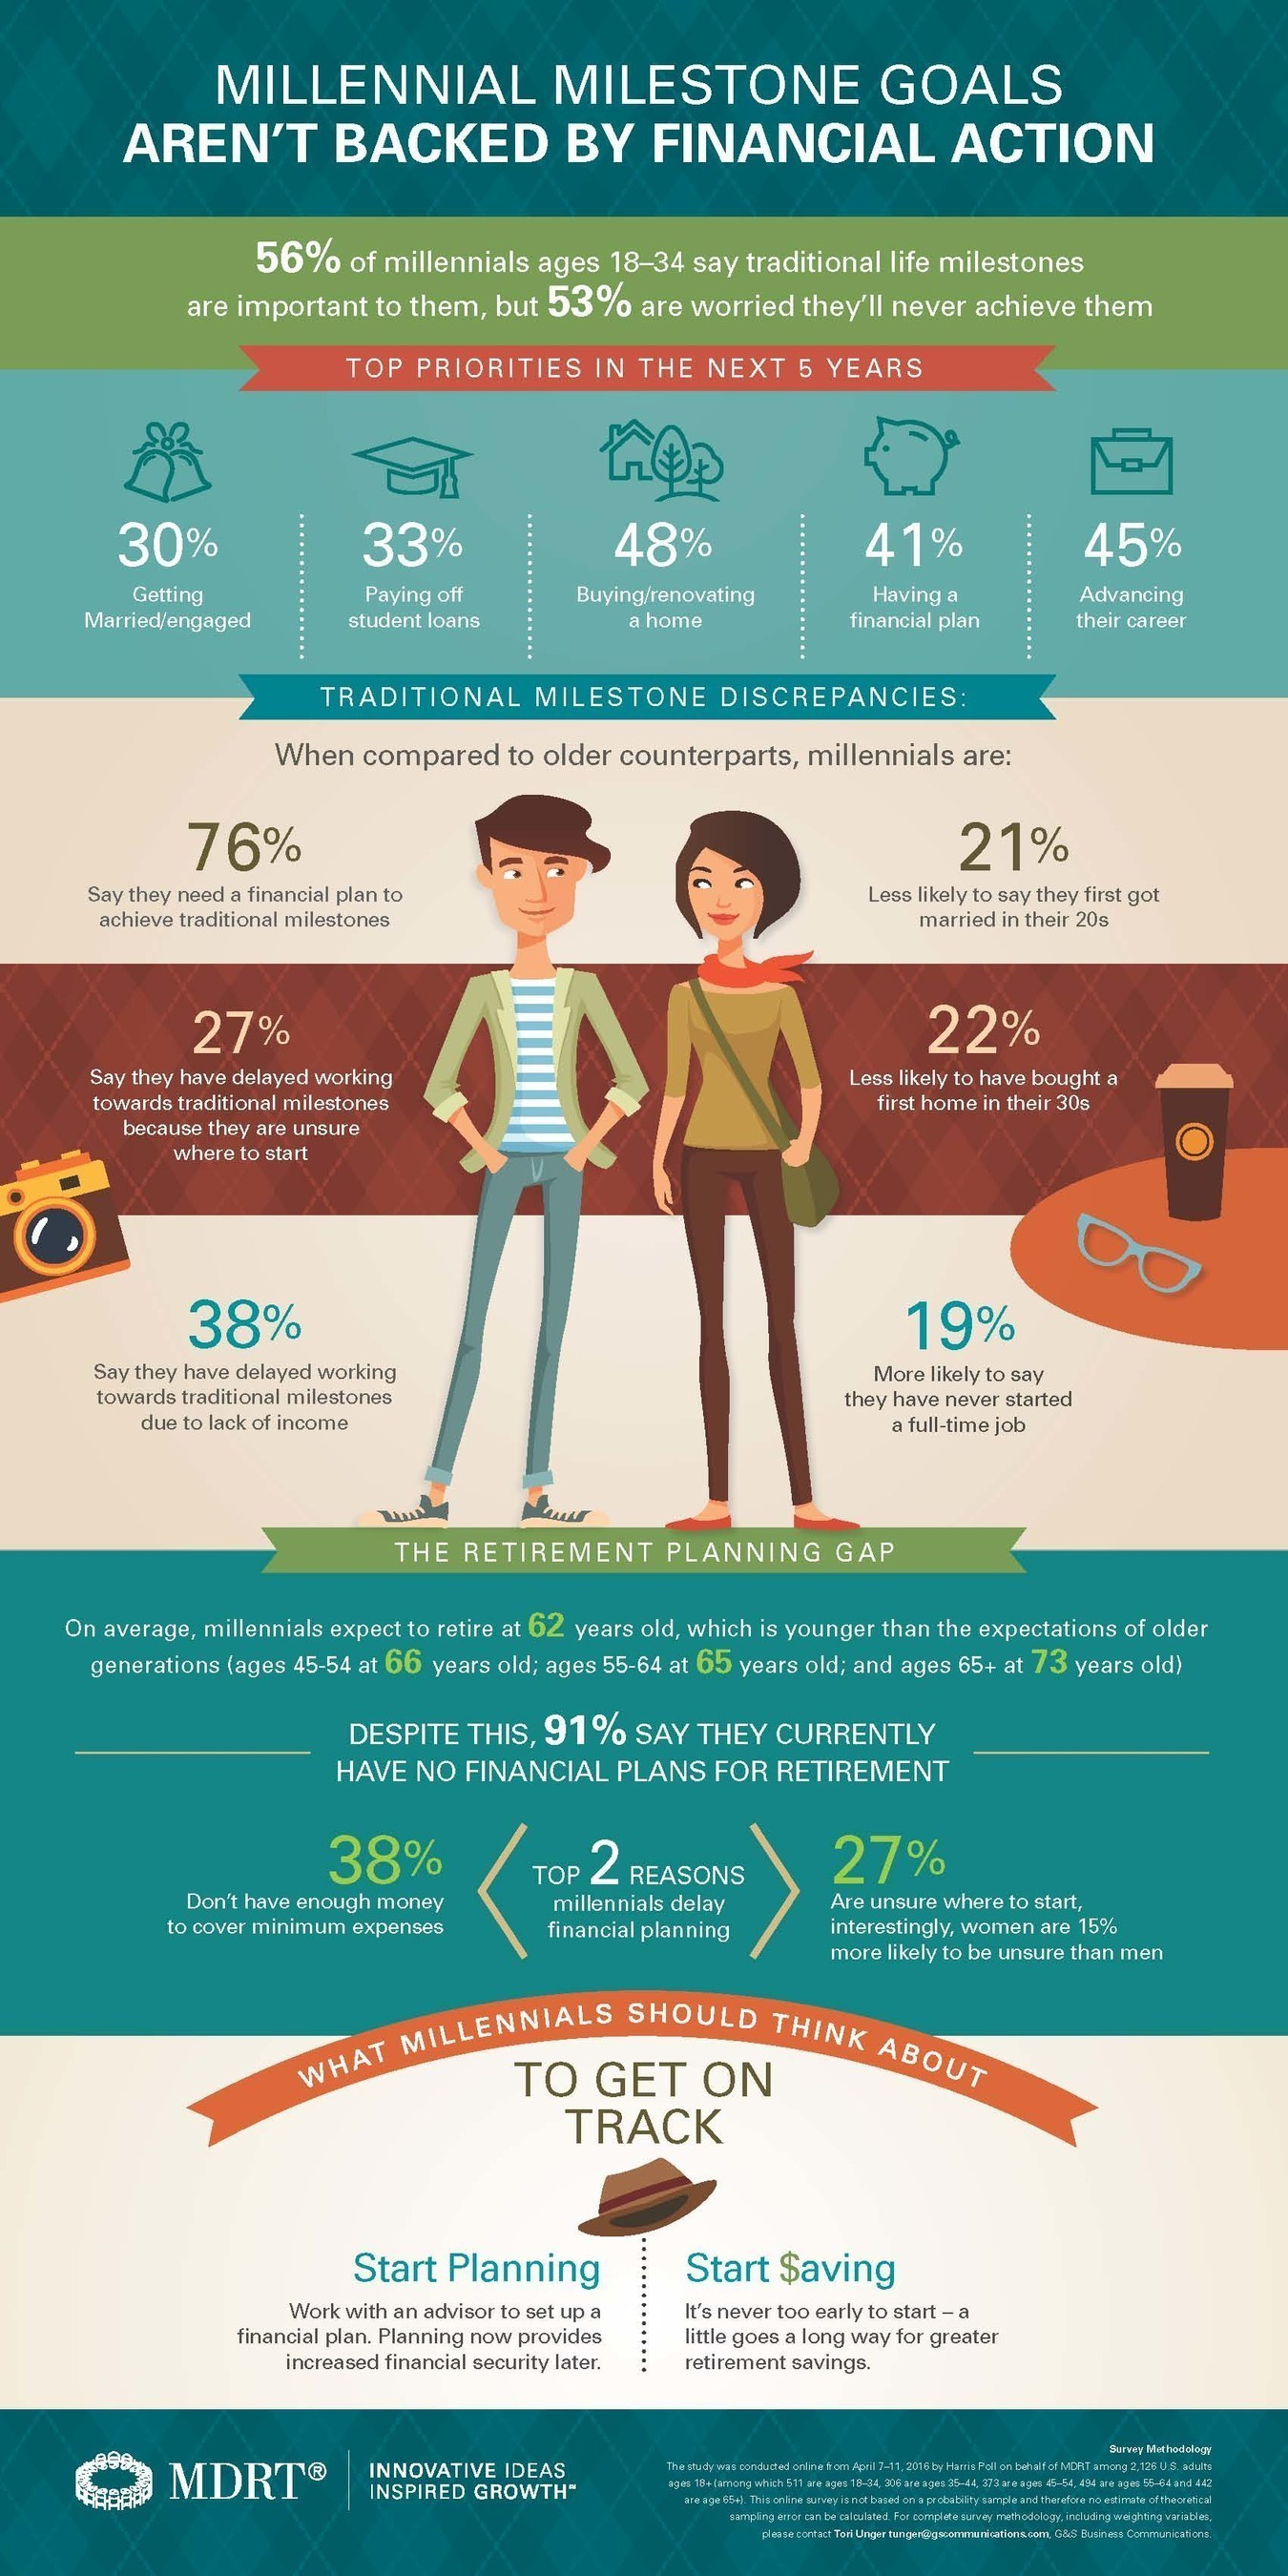 In an effort to better understand the mindset of millennials, a study was conducted online from April 7-11, 2016 by Harris Poll on behalf of MDRT.